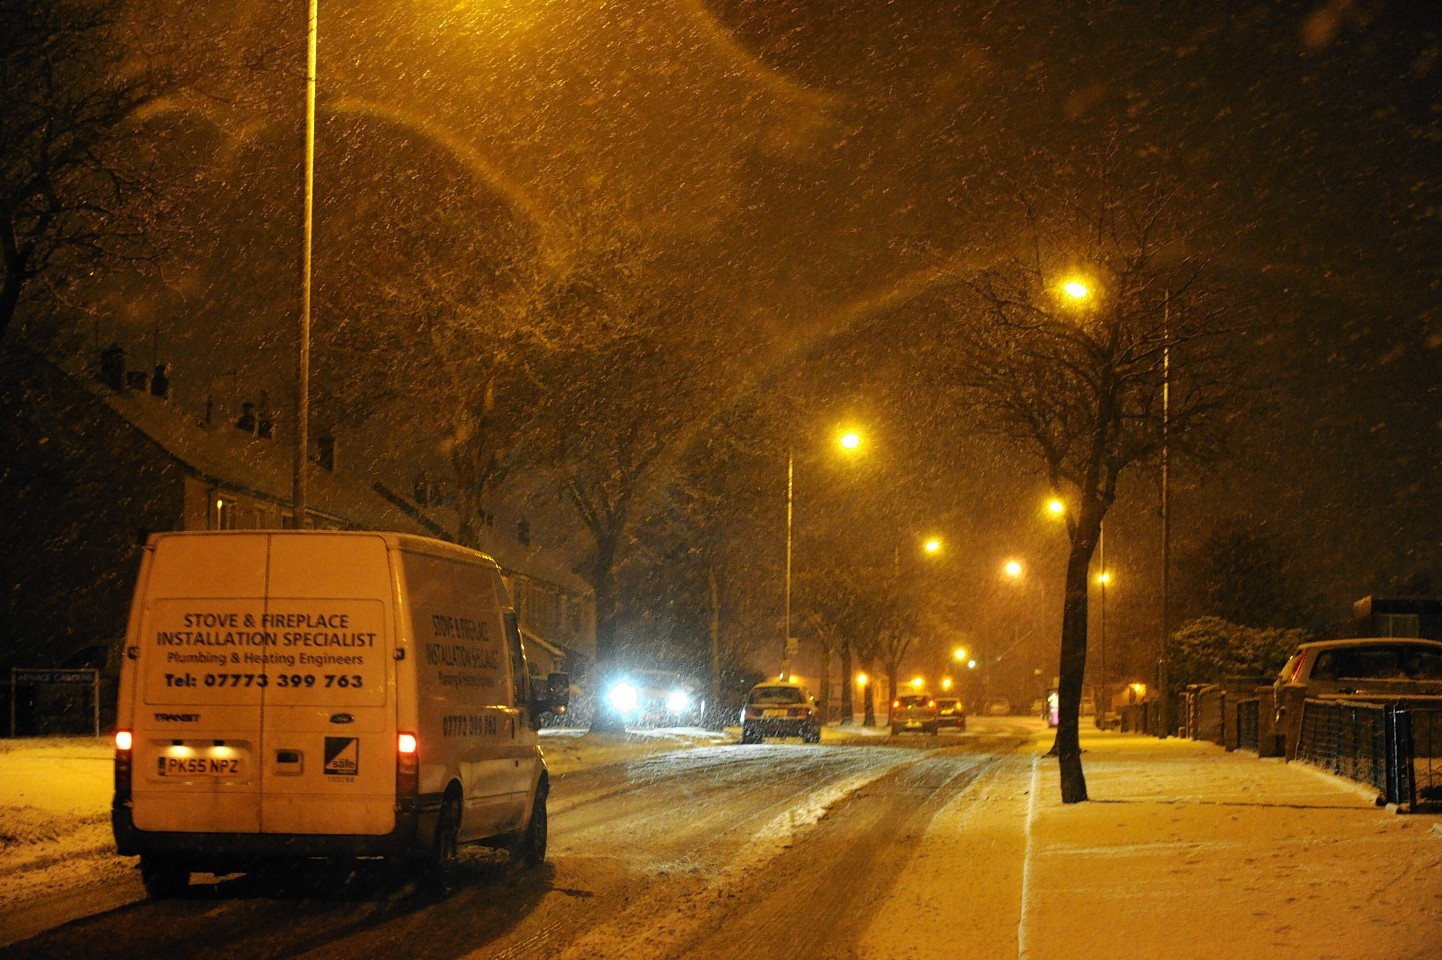 Aberdeen had its first heavy snowfall of the winter last week